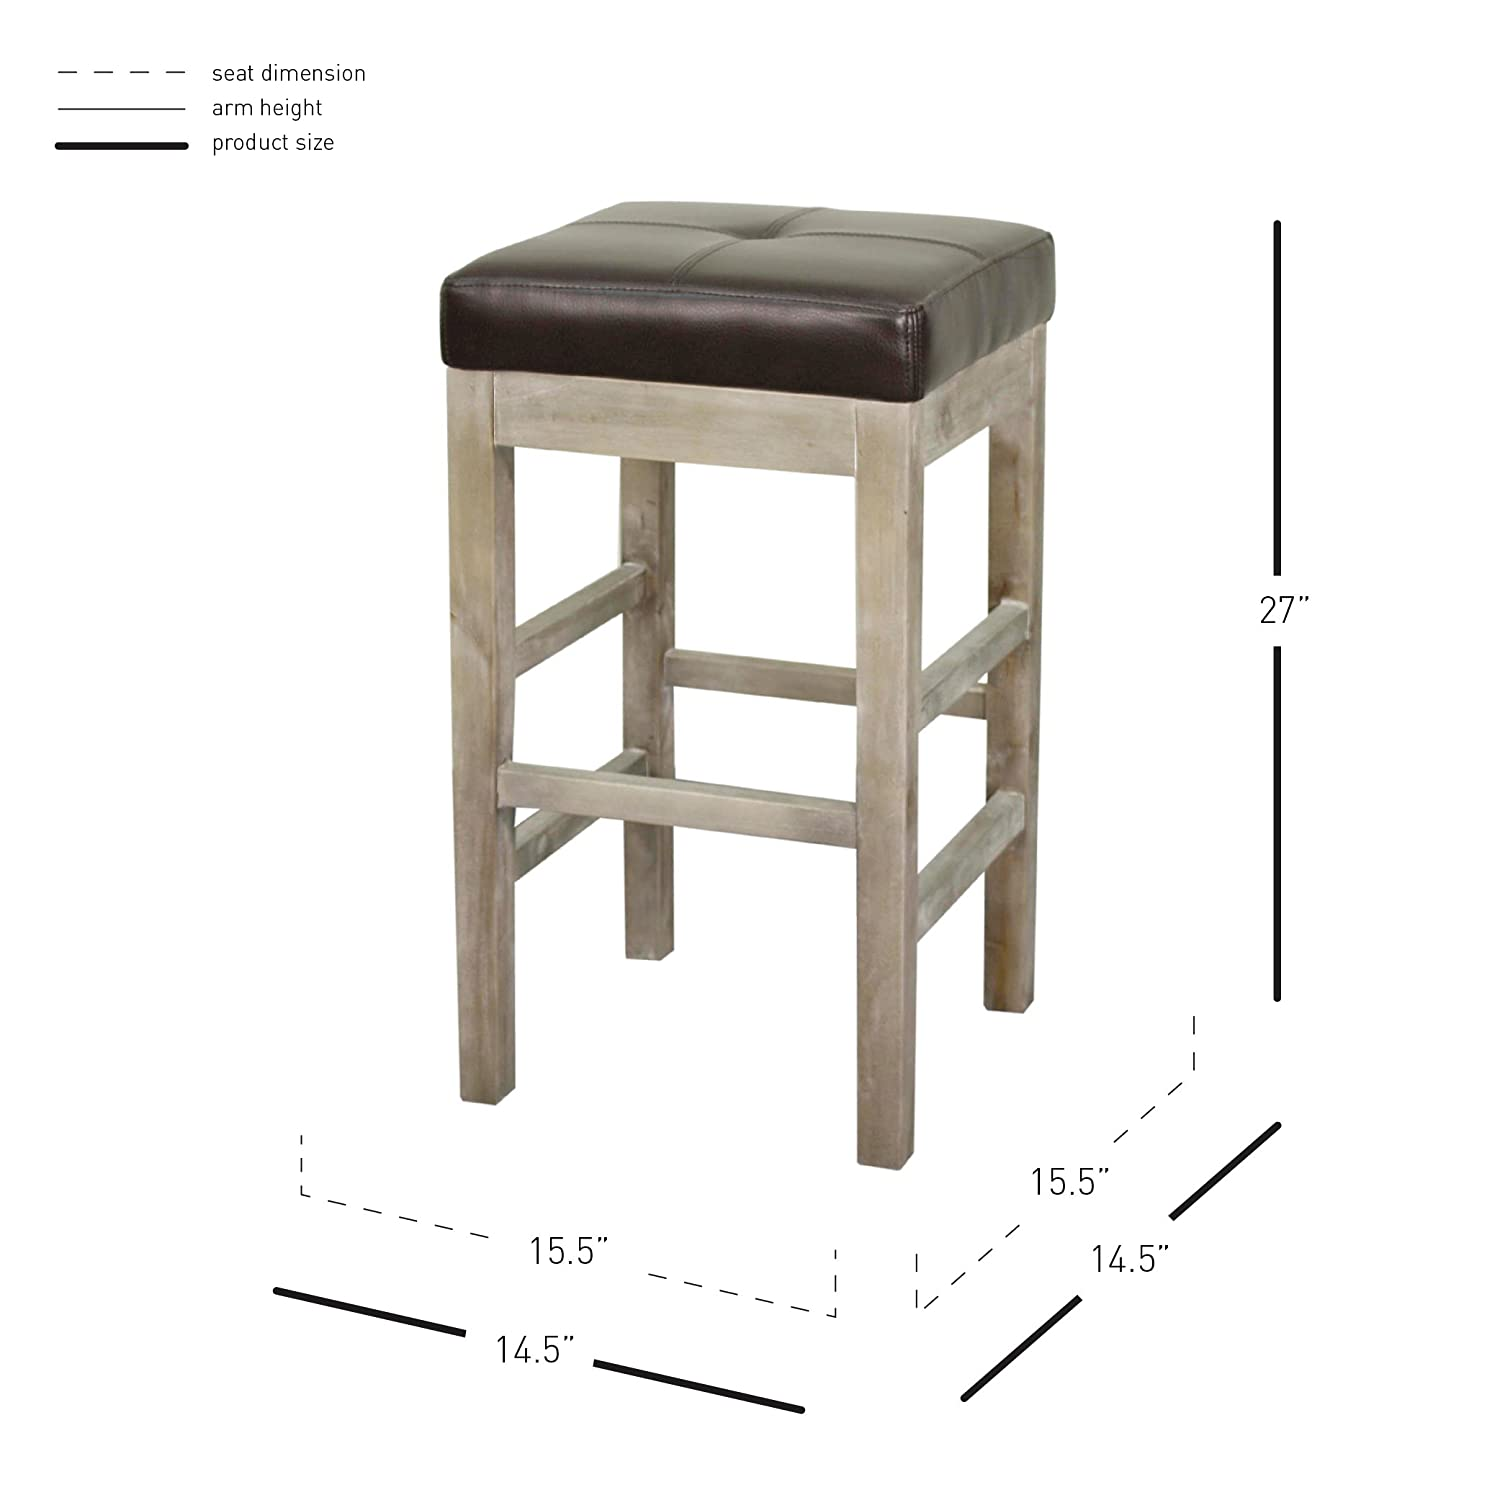 New Pacific Direct Valencia Backless Bonded Leather Counter Stool 27,Distressed Gray Legs,Paynes Gray